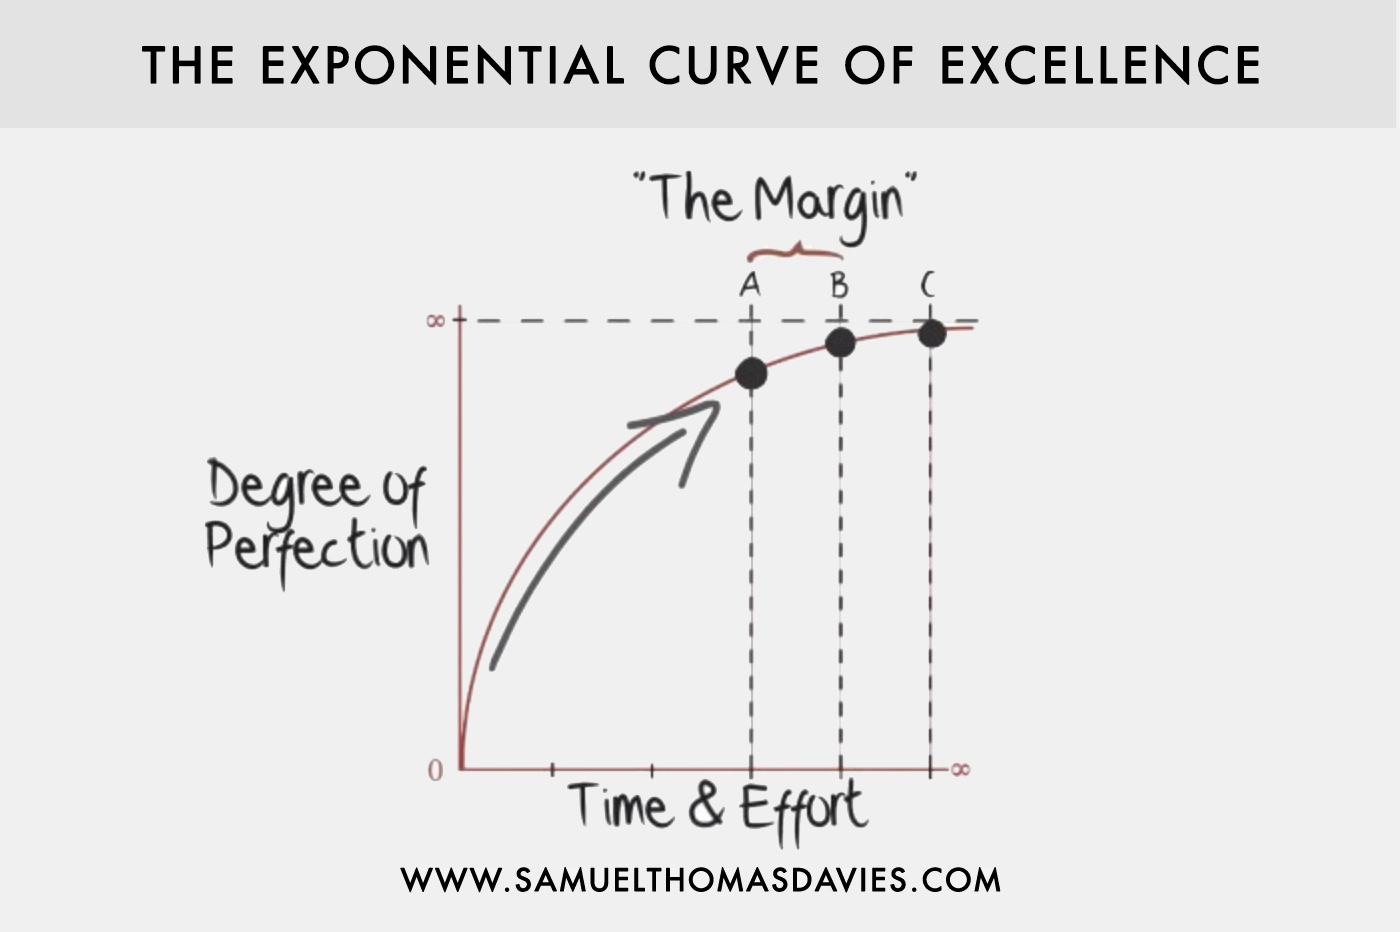 The-Exponential-Curve-of-Excellence-1.jpg